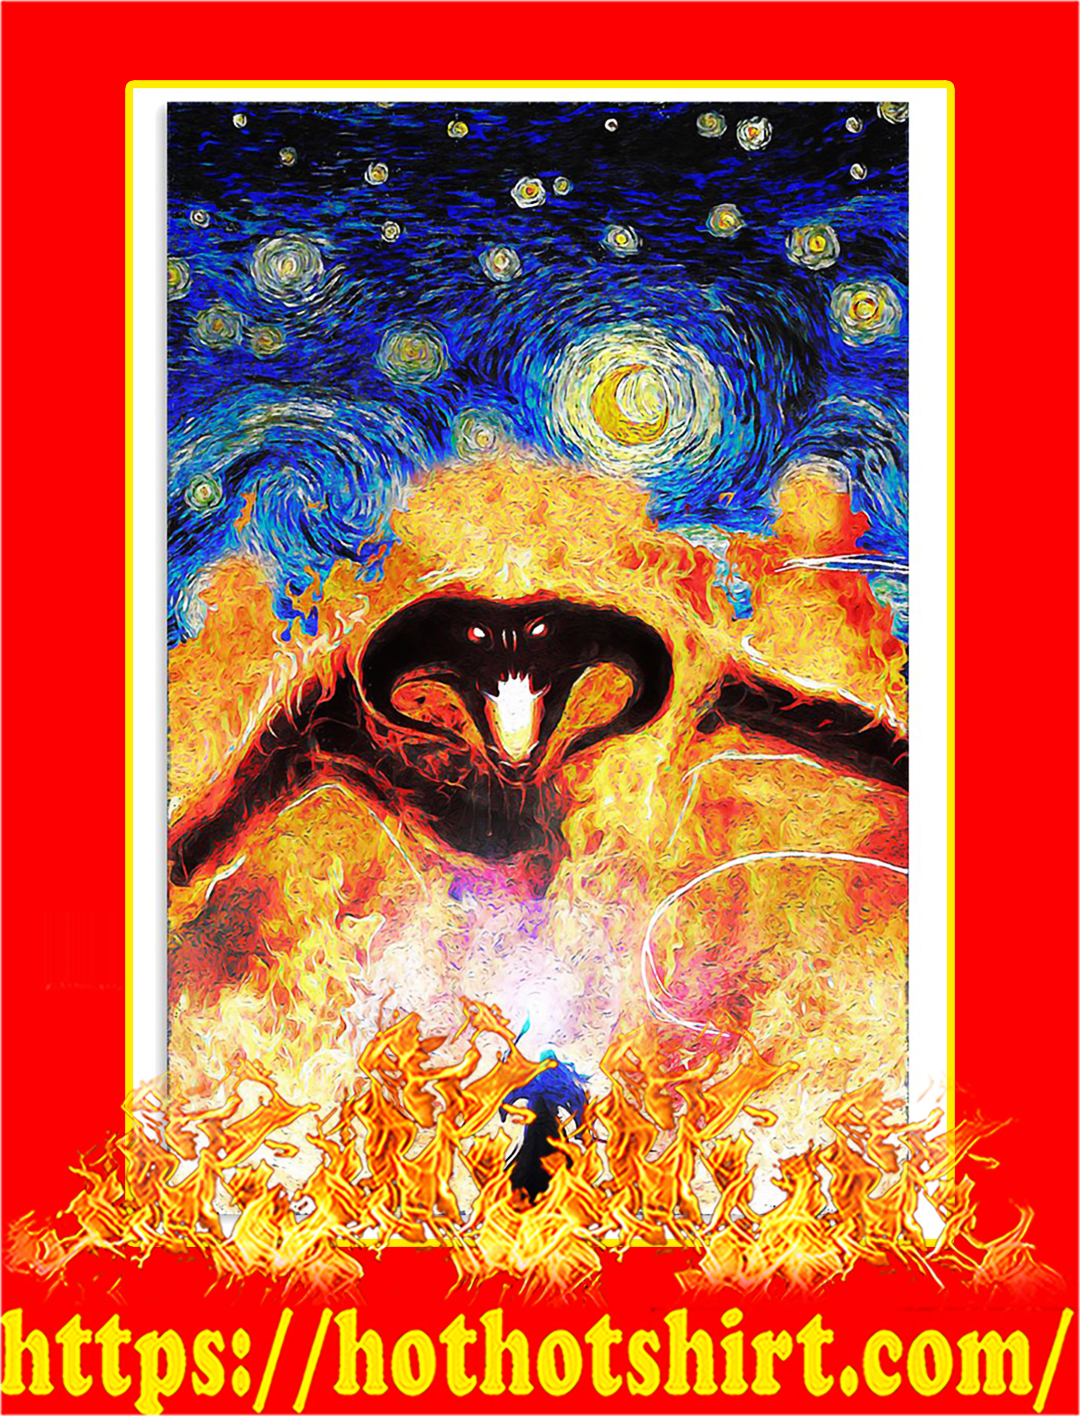 Balrog LOTR fire demon starry night poster - A1